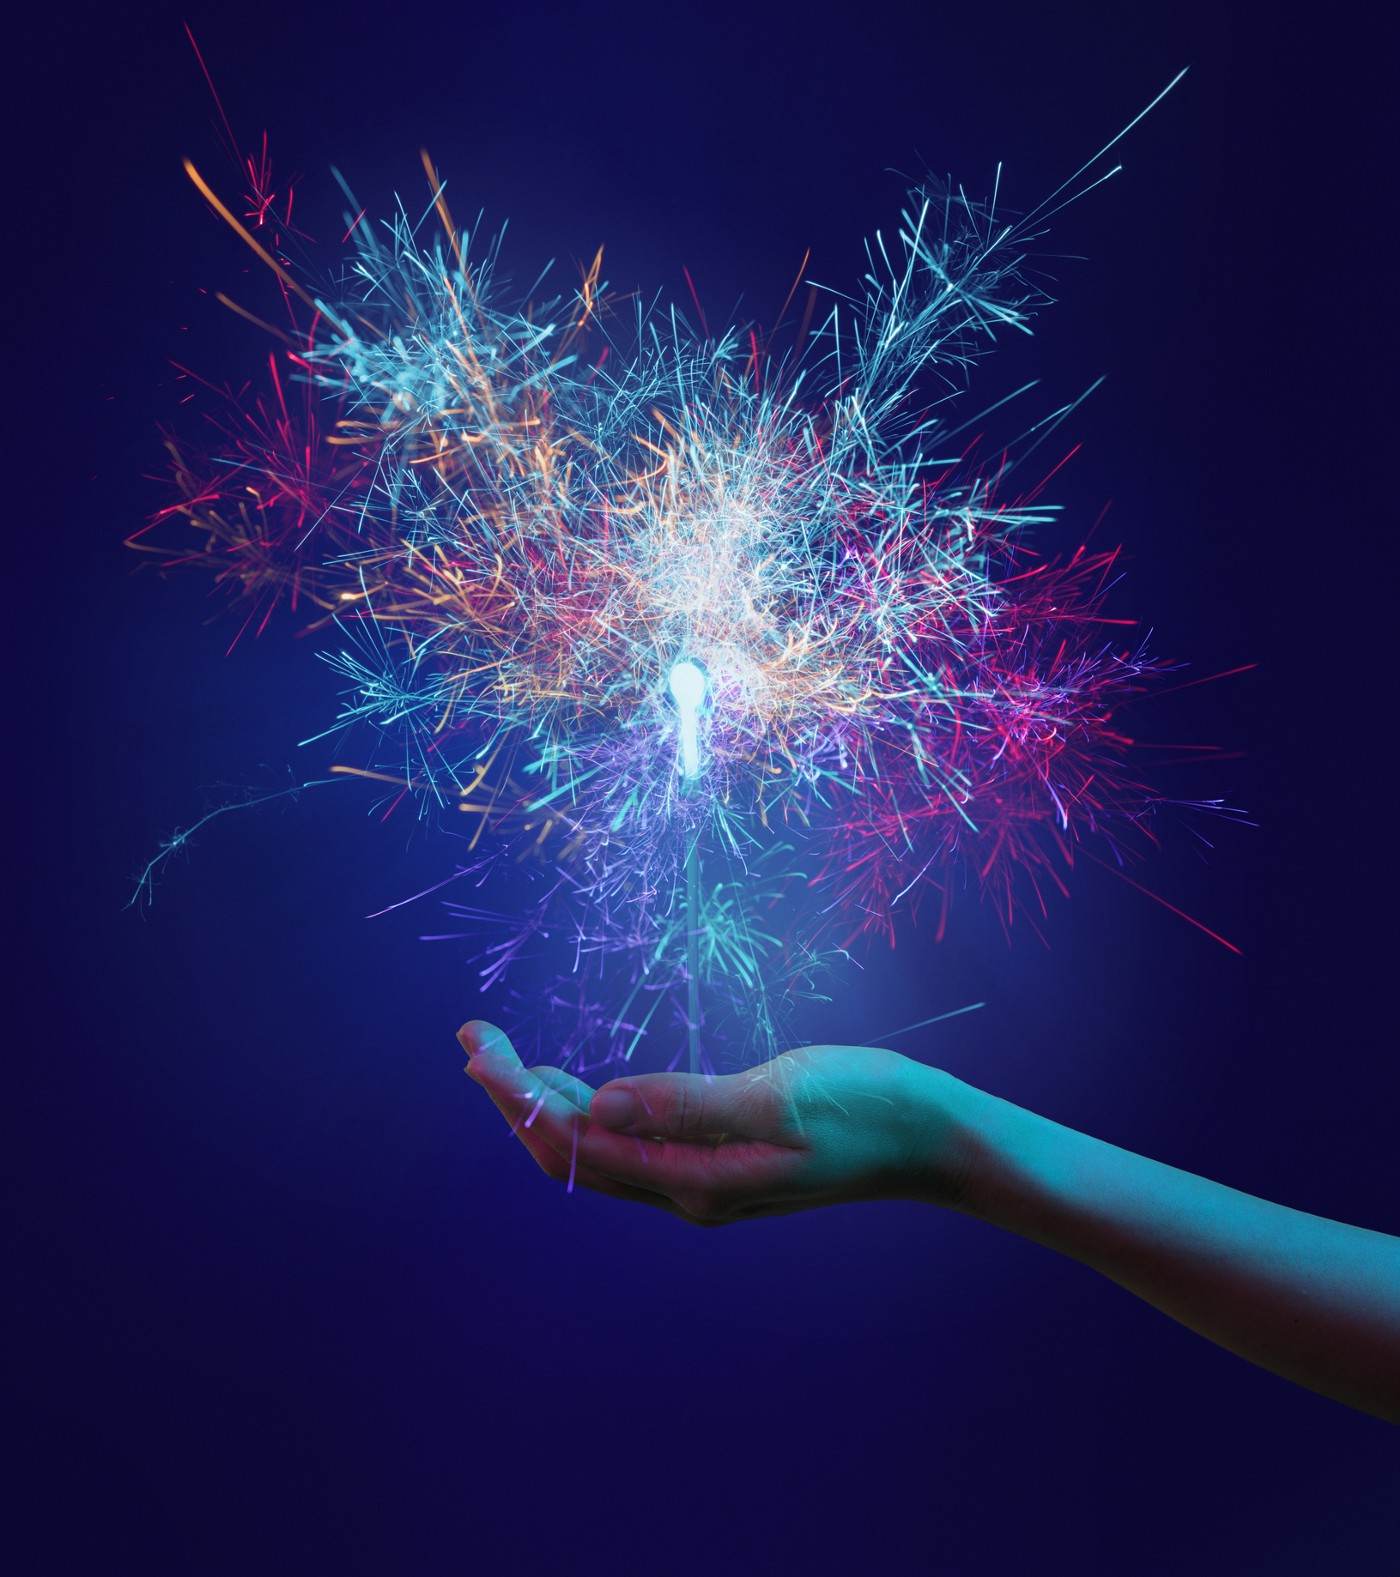 Colorful sparks fly out of the palm of a hand, with a silhouette of a keyhole inside.